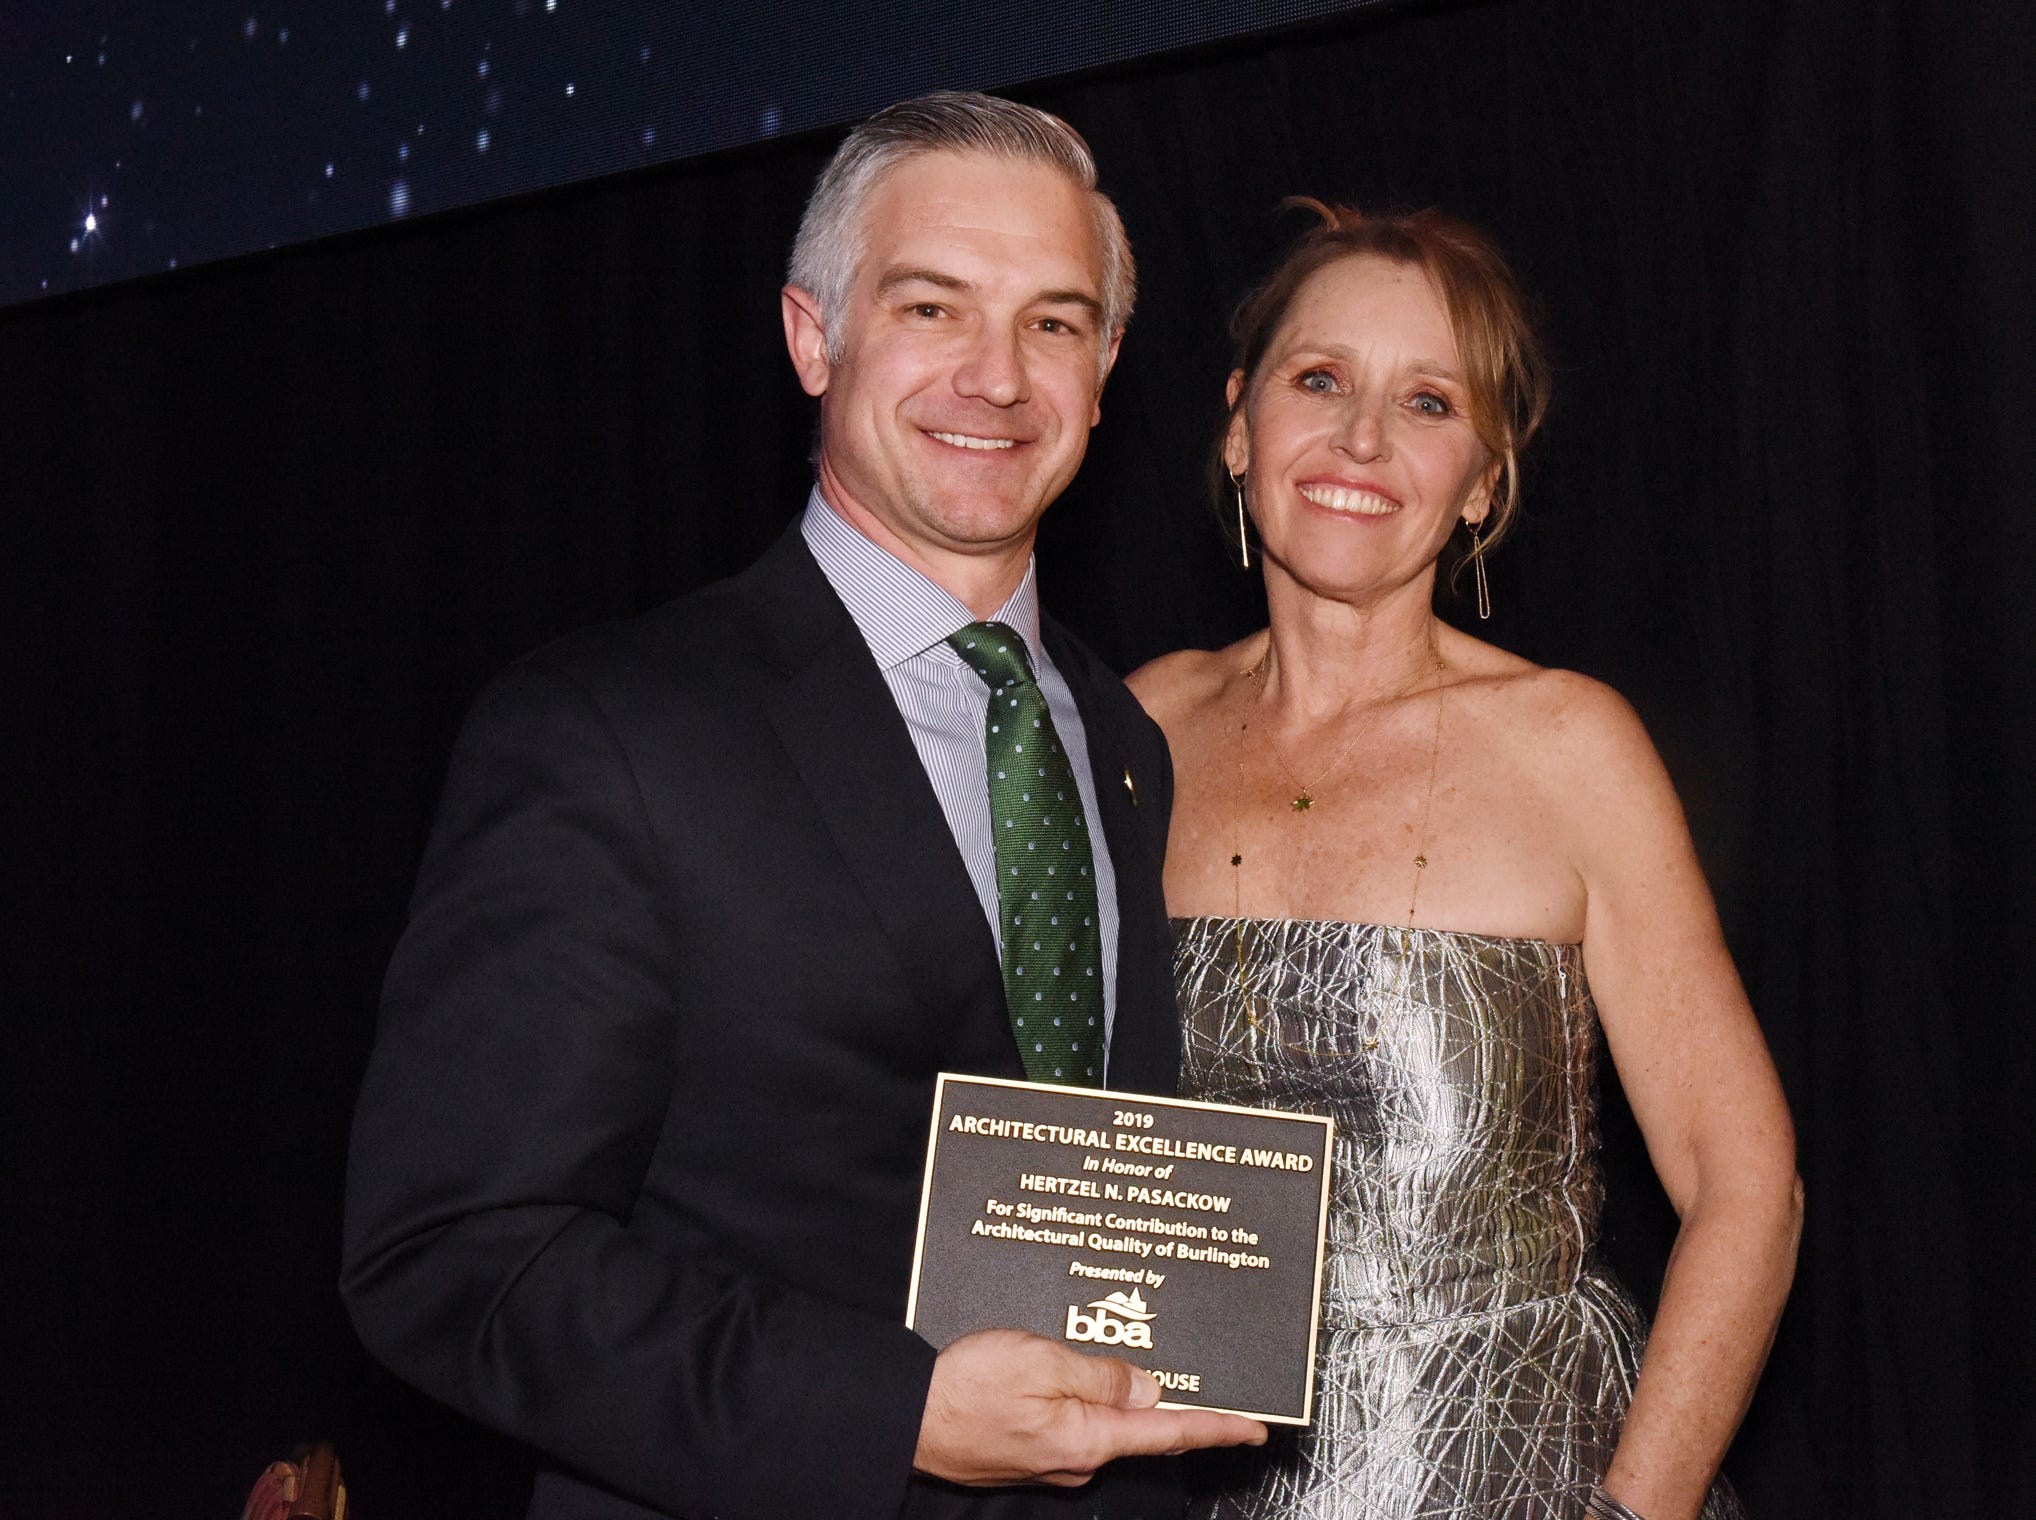 Shane Jacobson, president and CEO of the University of Vermont Foundation, accepts the 2019 Architectural Excellence Award in honor of Hertzel N. Pasackow, from Kelly Devine, executive director of the BBA, at the 41st BBA Burlington Business Association Dinner & Annual Meeting at the Hilton Burlington Lake Champlain in Burlington, VT on Thursday, April 4, 2019.